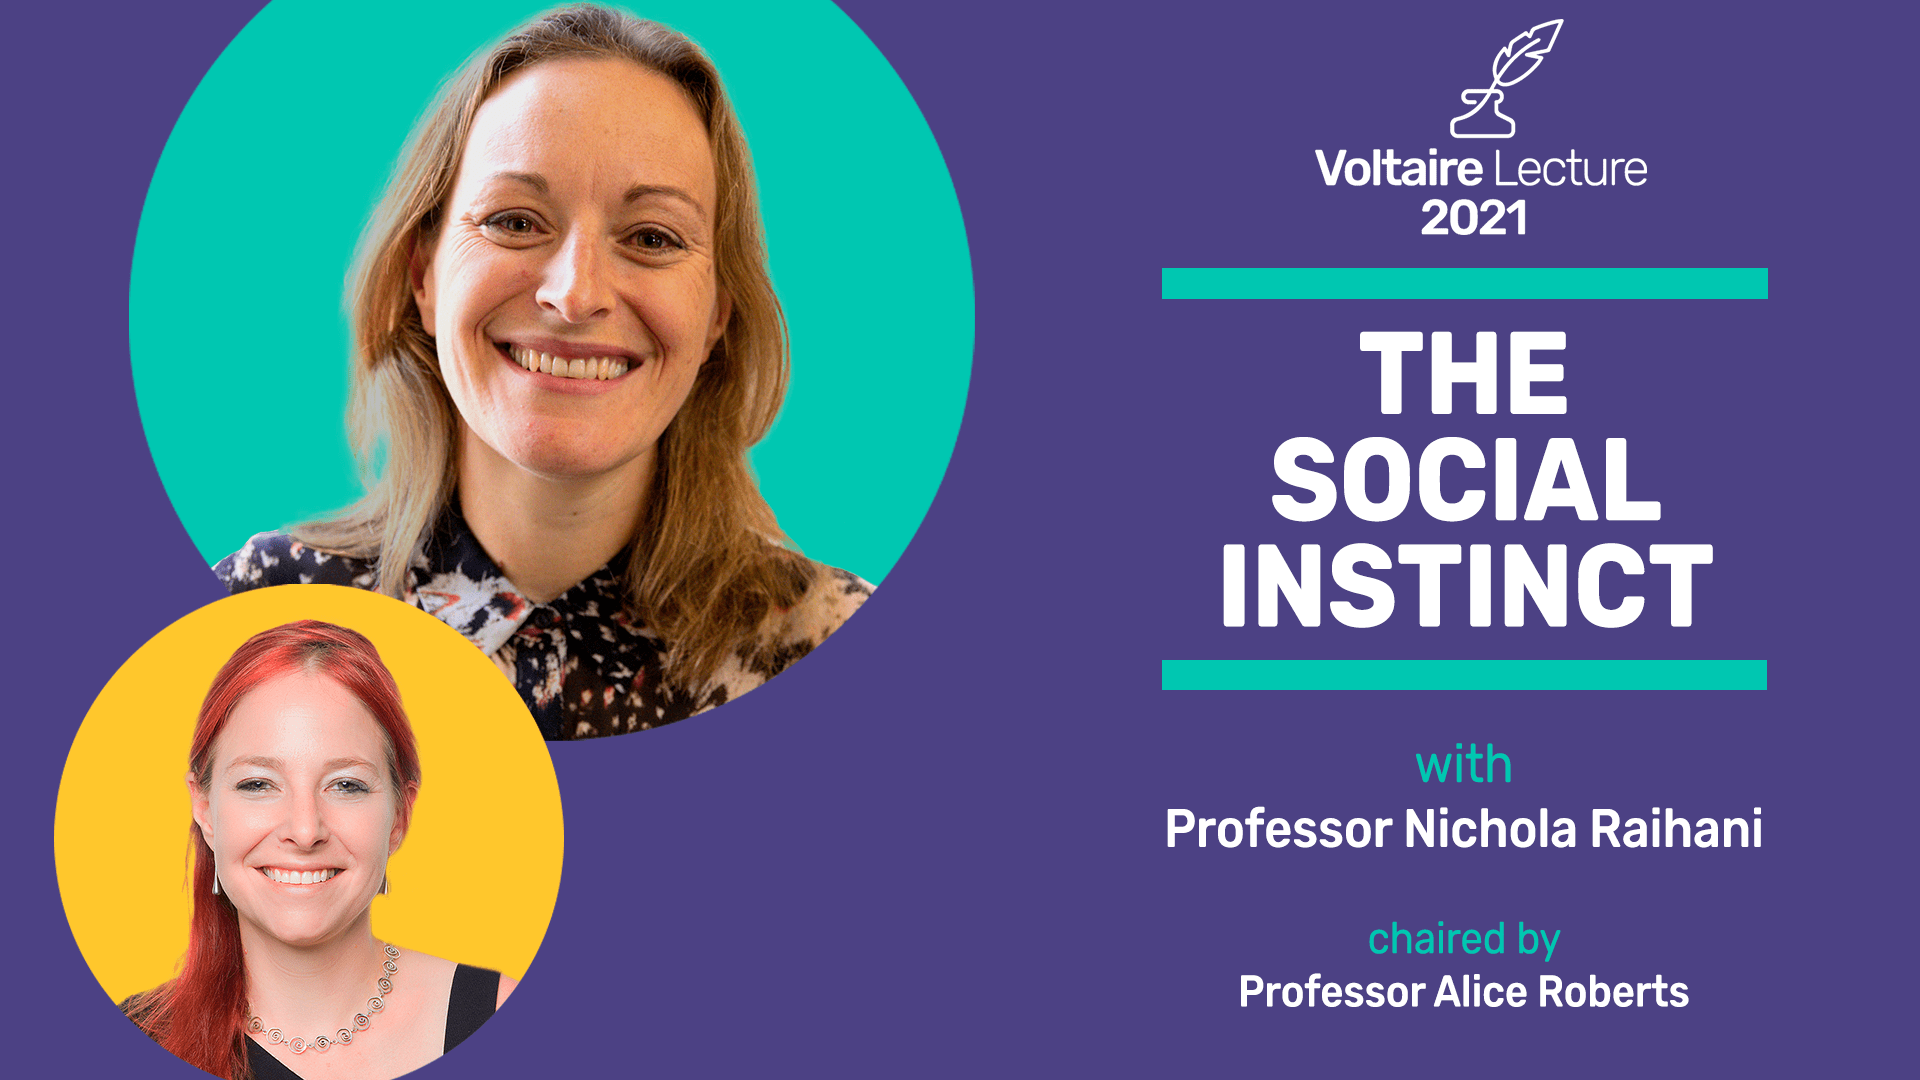 Promotional image for The Voltaire Lecture 2021: The Social Instinct, with Professor Nichola Raihani. Chaired by Professor Alice Roberts.